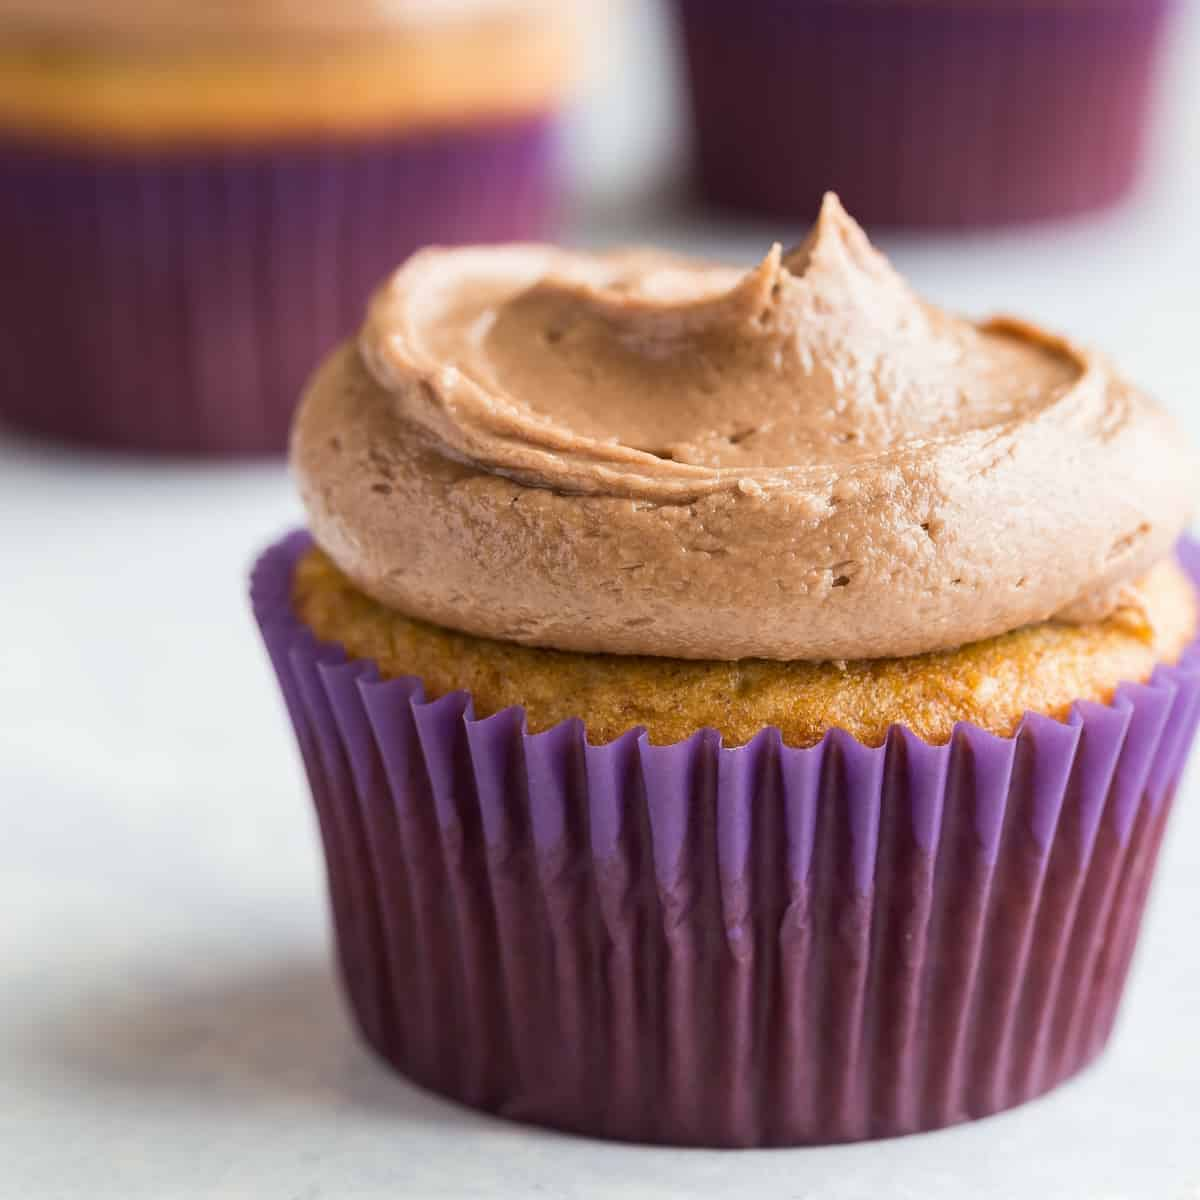 swirls of Nutella frosting over banana cupcakes